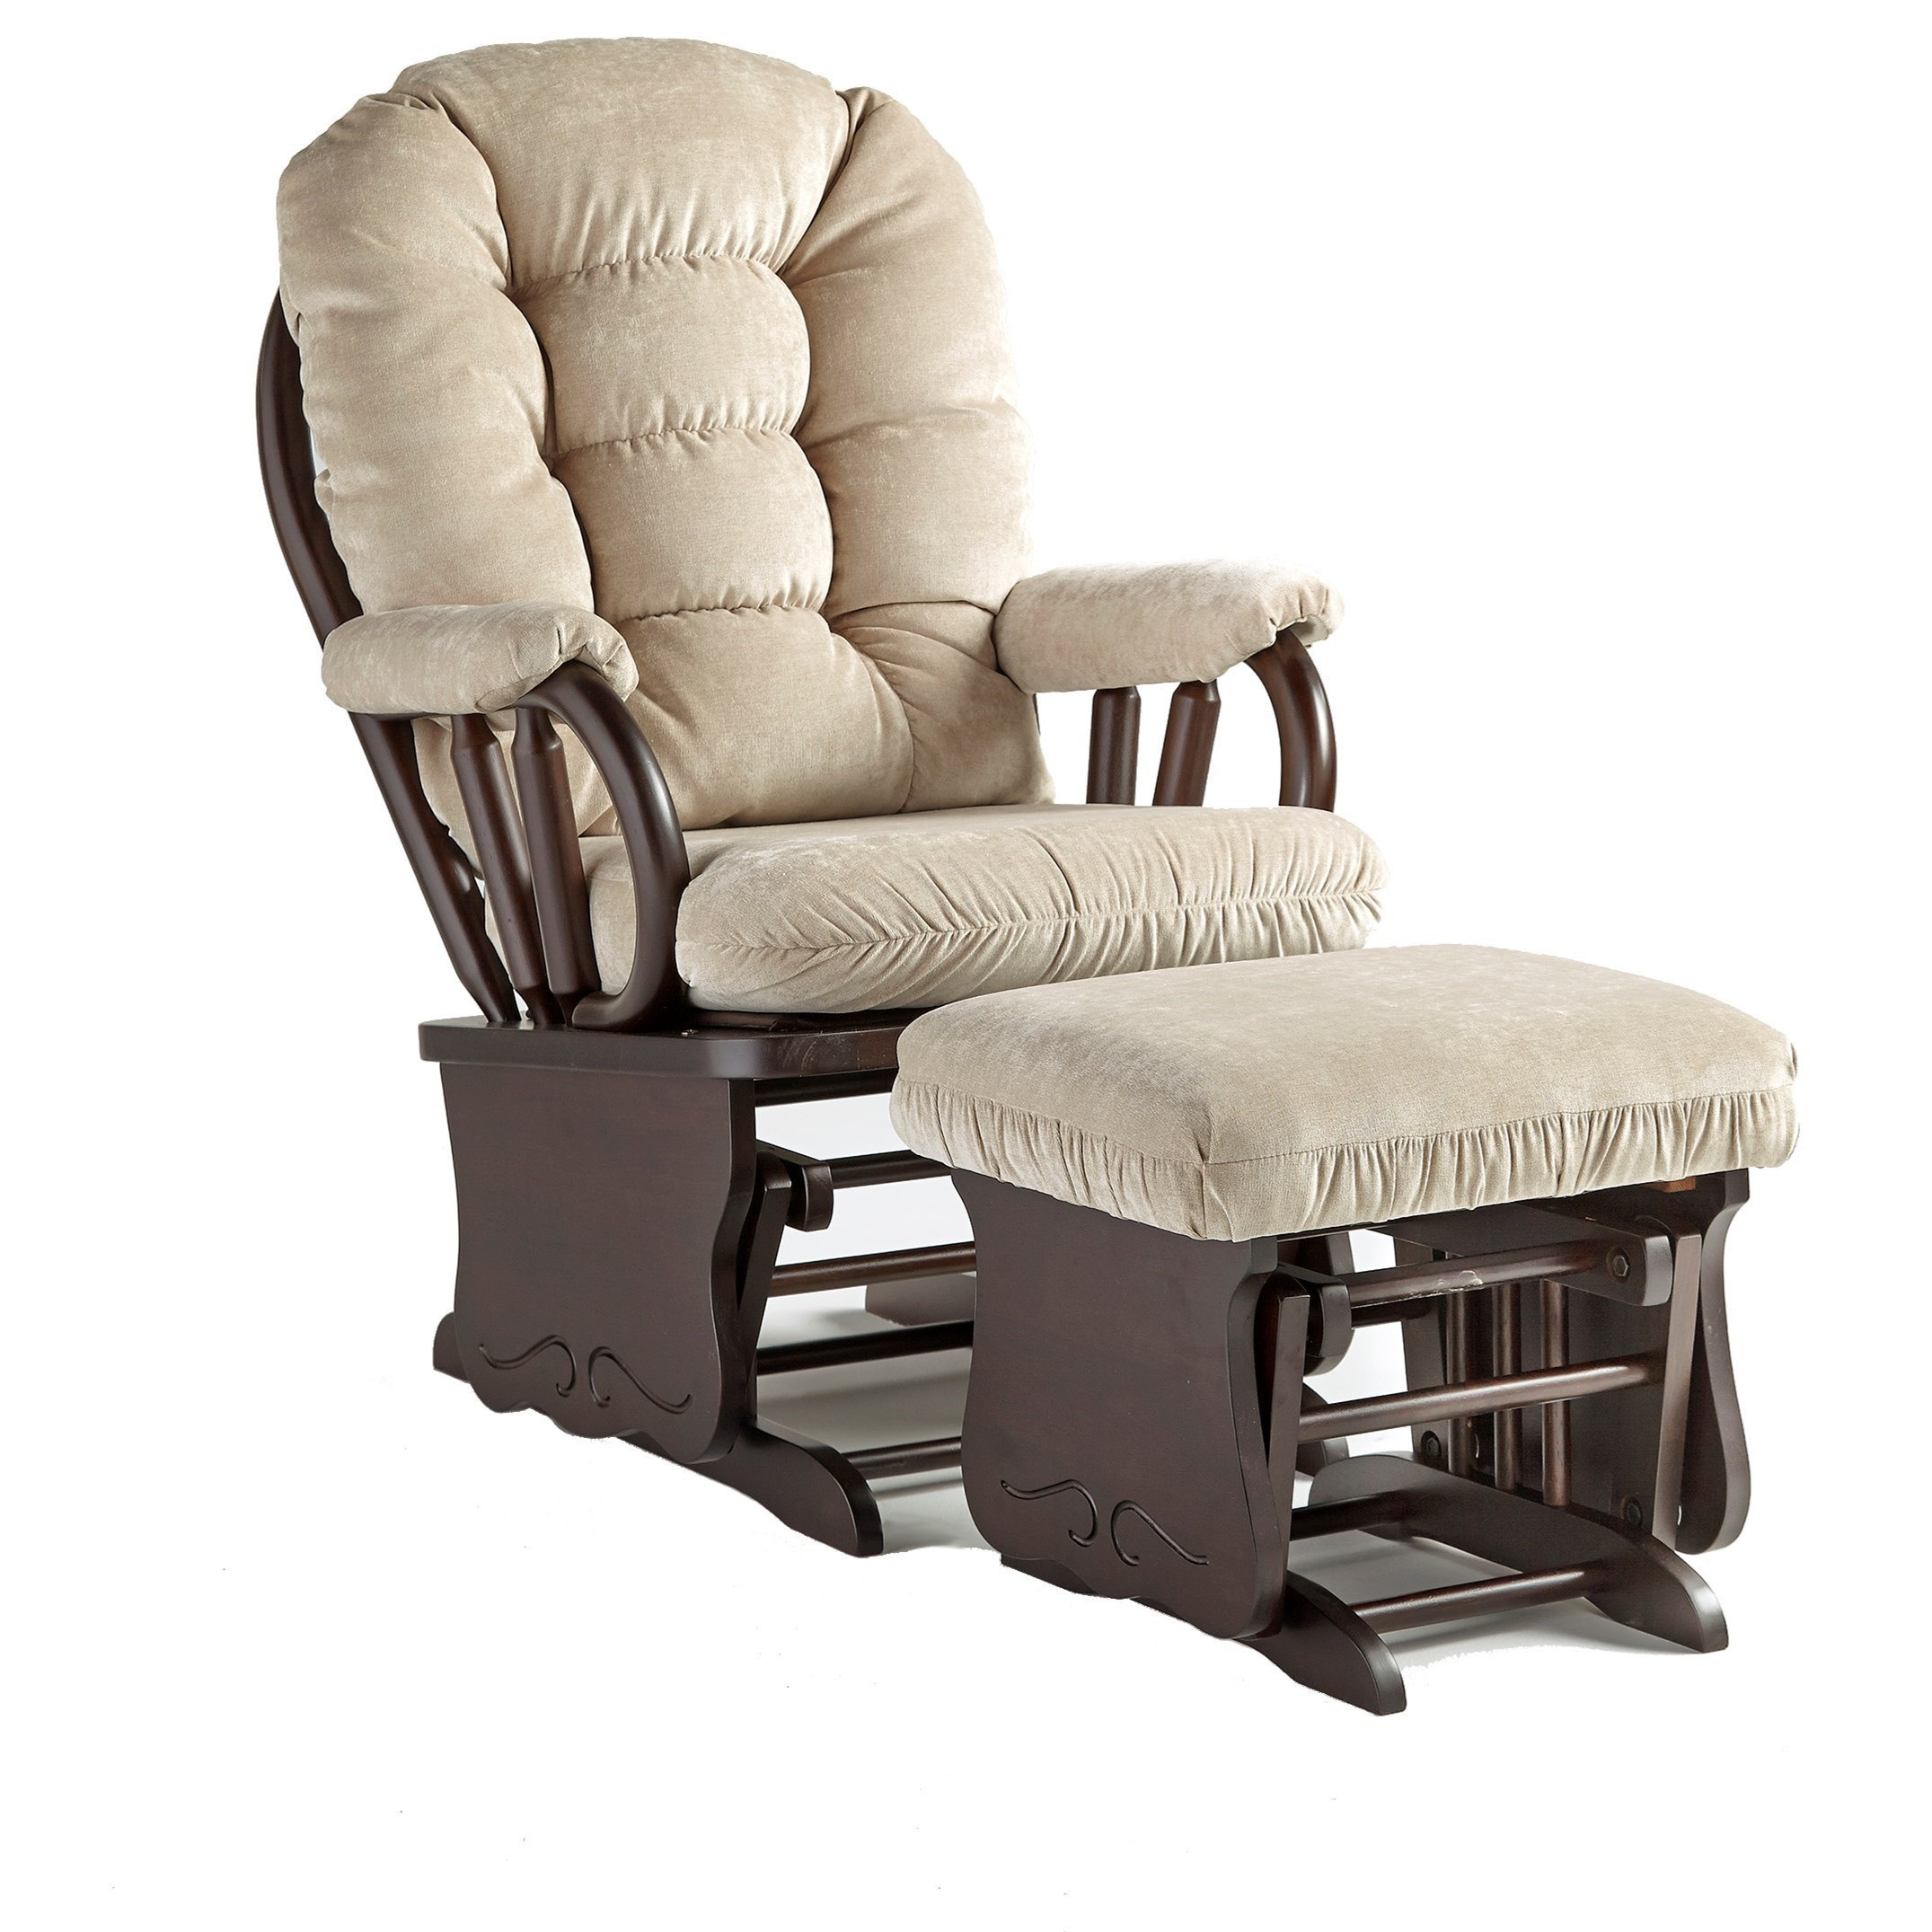 Best Home Furnishings ColbyGlide Rocker And Ottoman